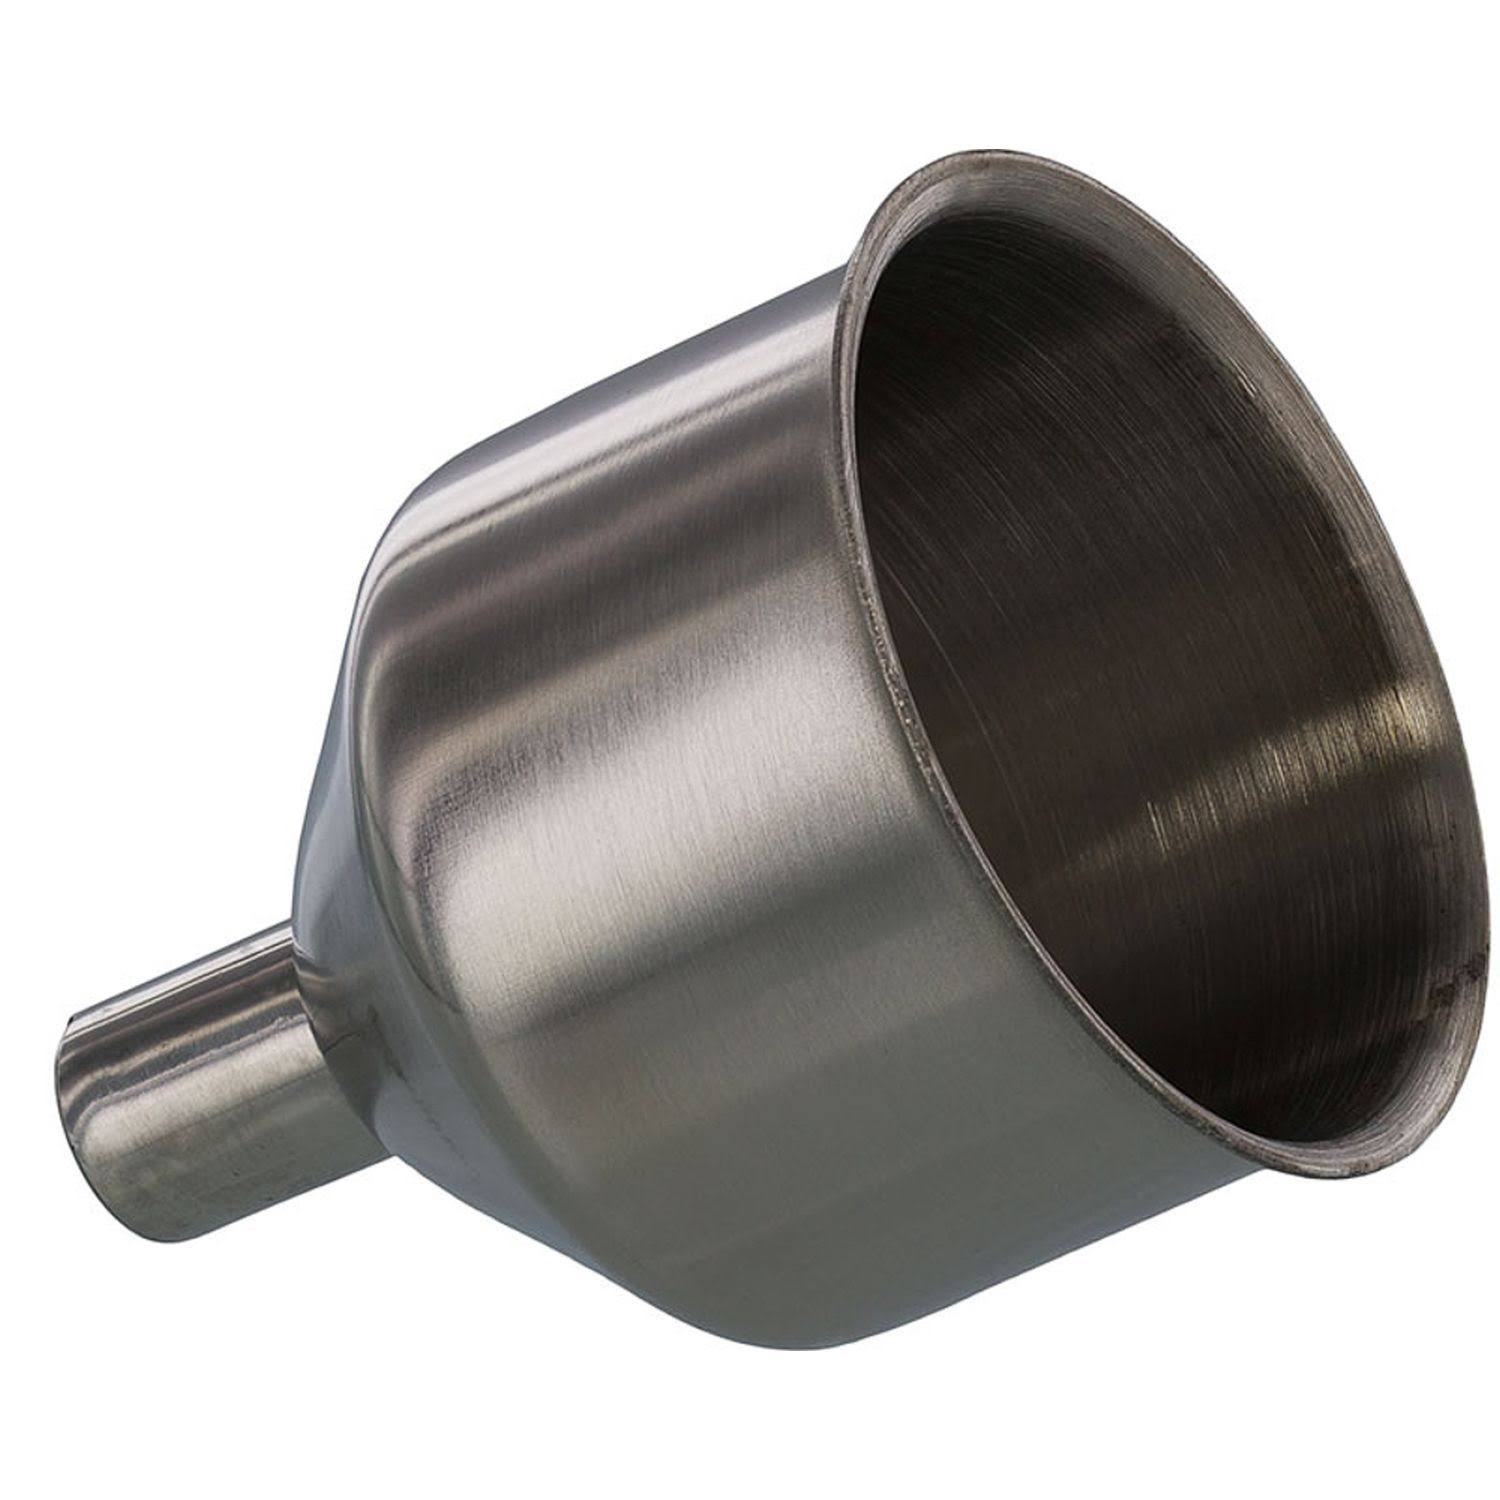 SE Flasks Funnel - Stainless Steel